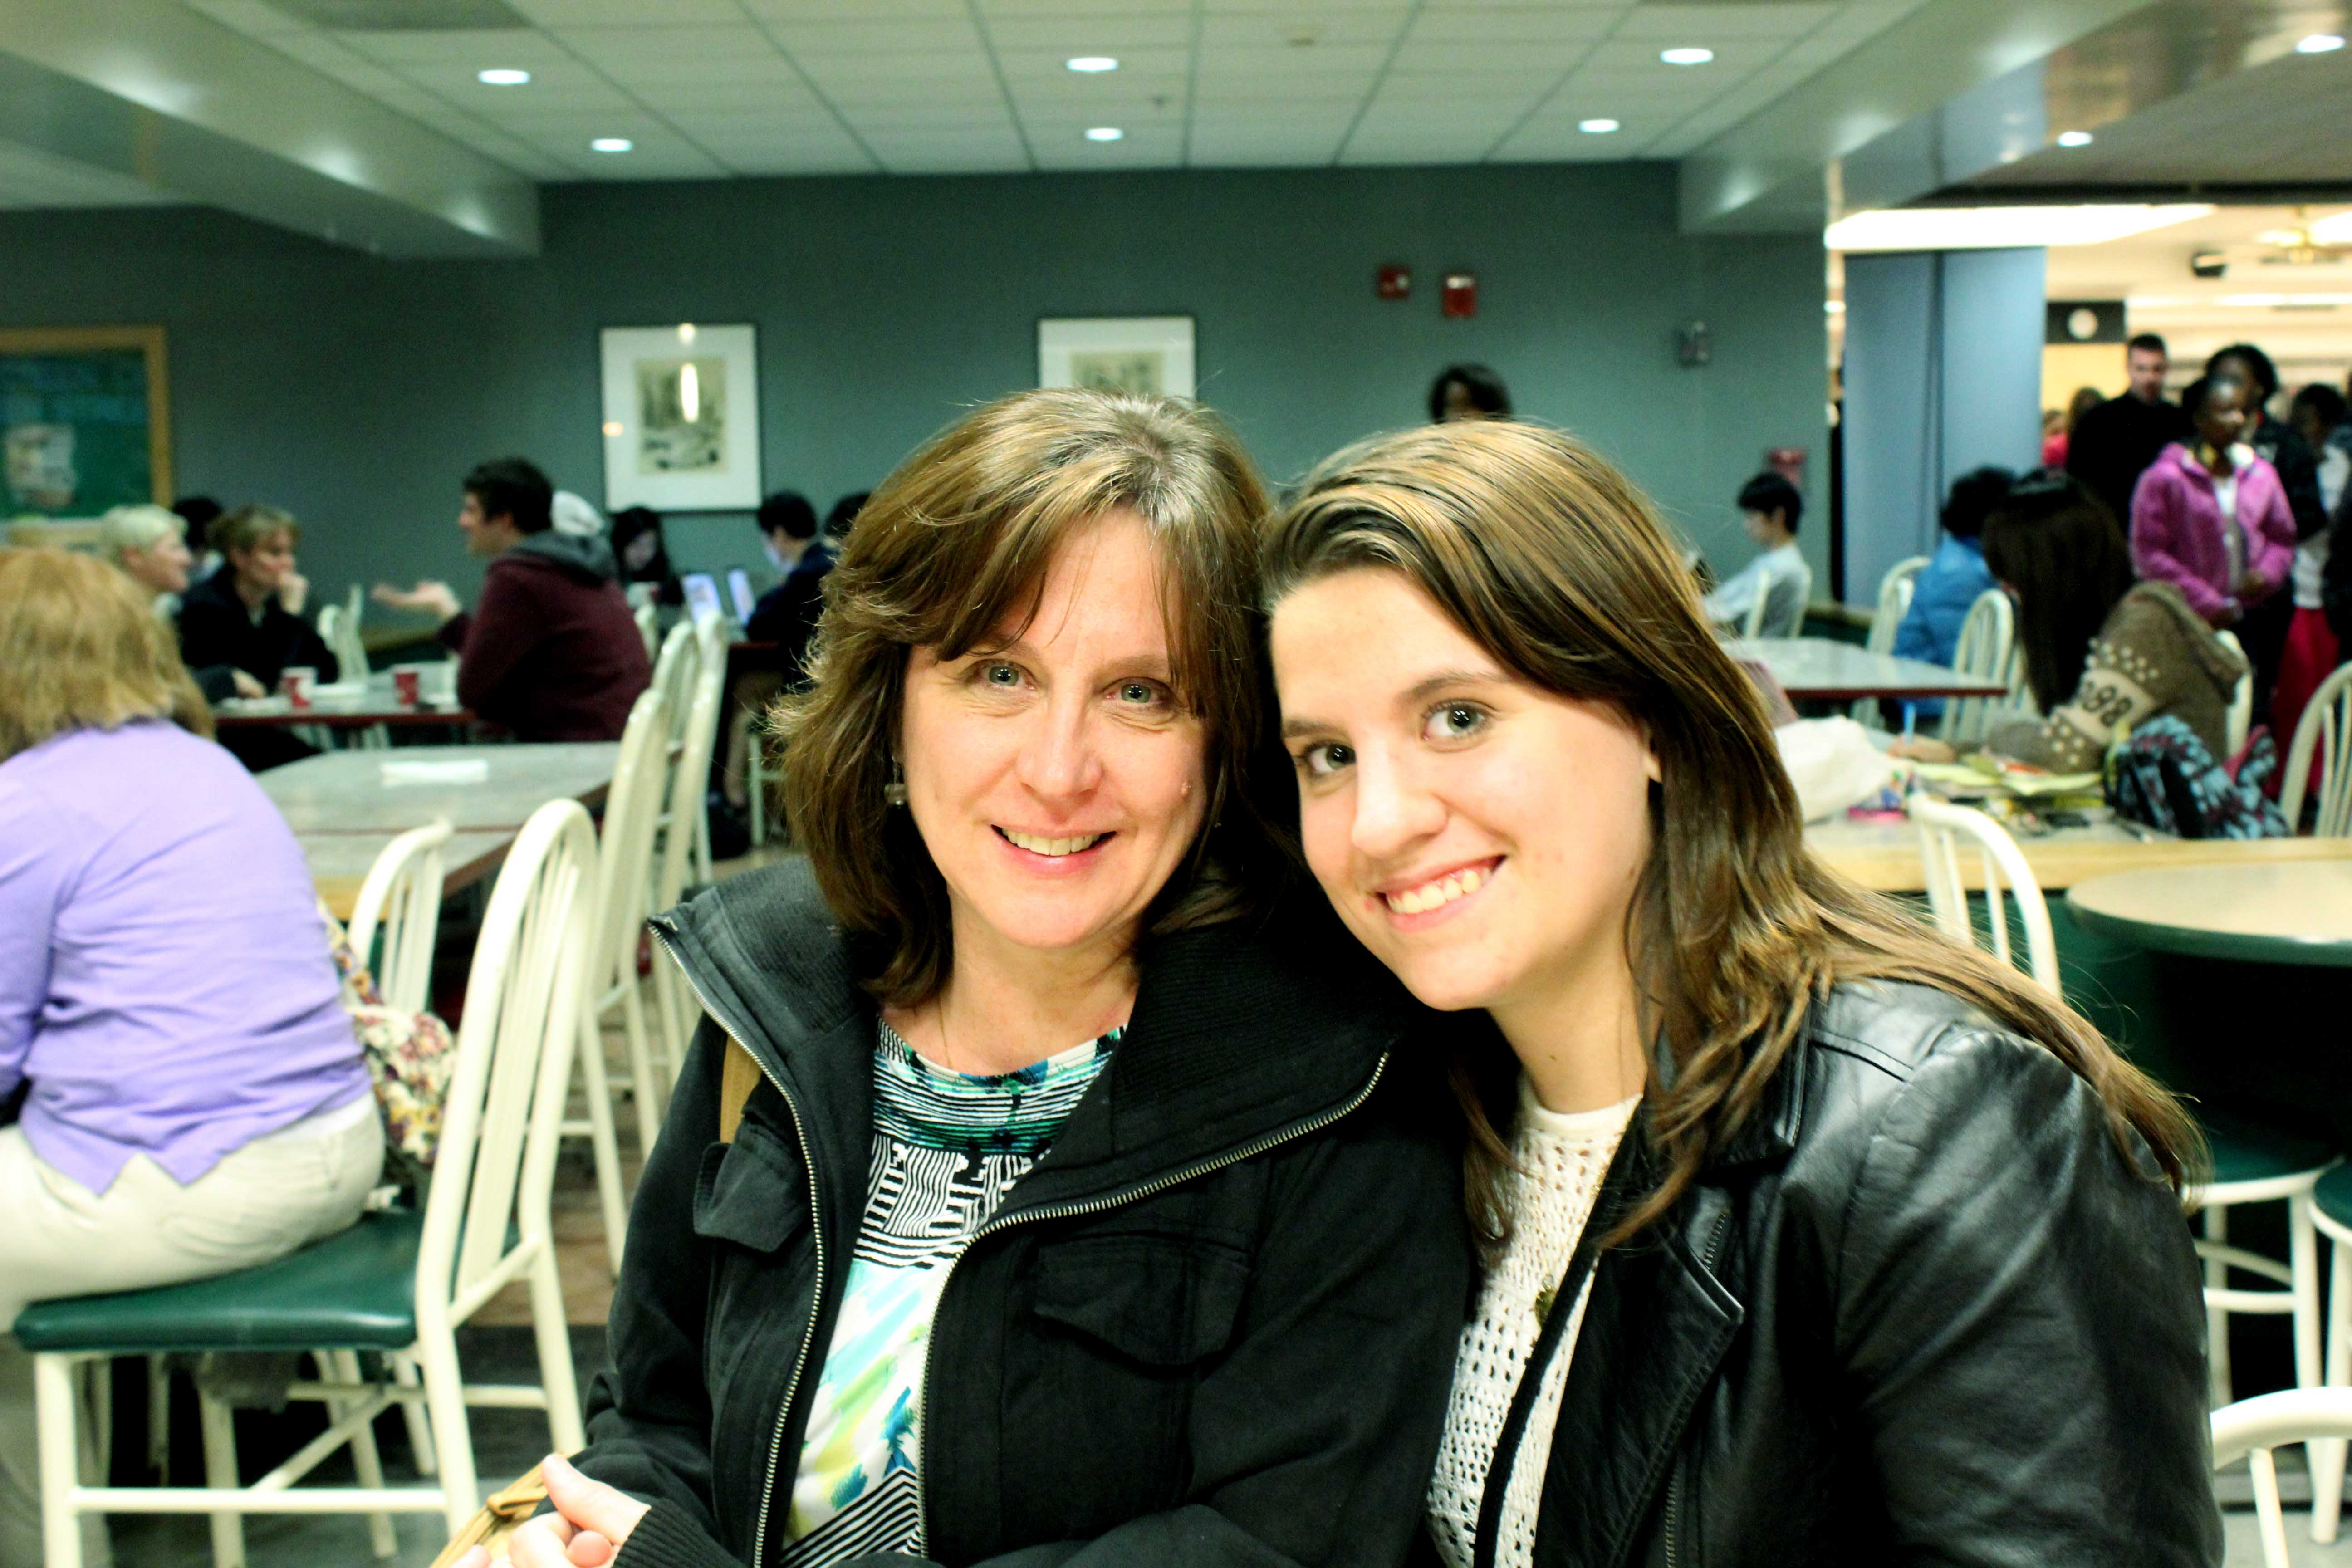 Mary Dehaan (left), with her daughter Stephanie Dehaan, (right). Multiple events on campus are provided for families visiting on Moms Weekend, including fraternity events and activities at the Illini Union.